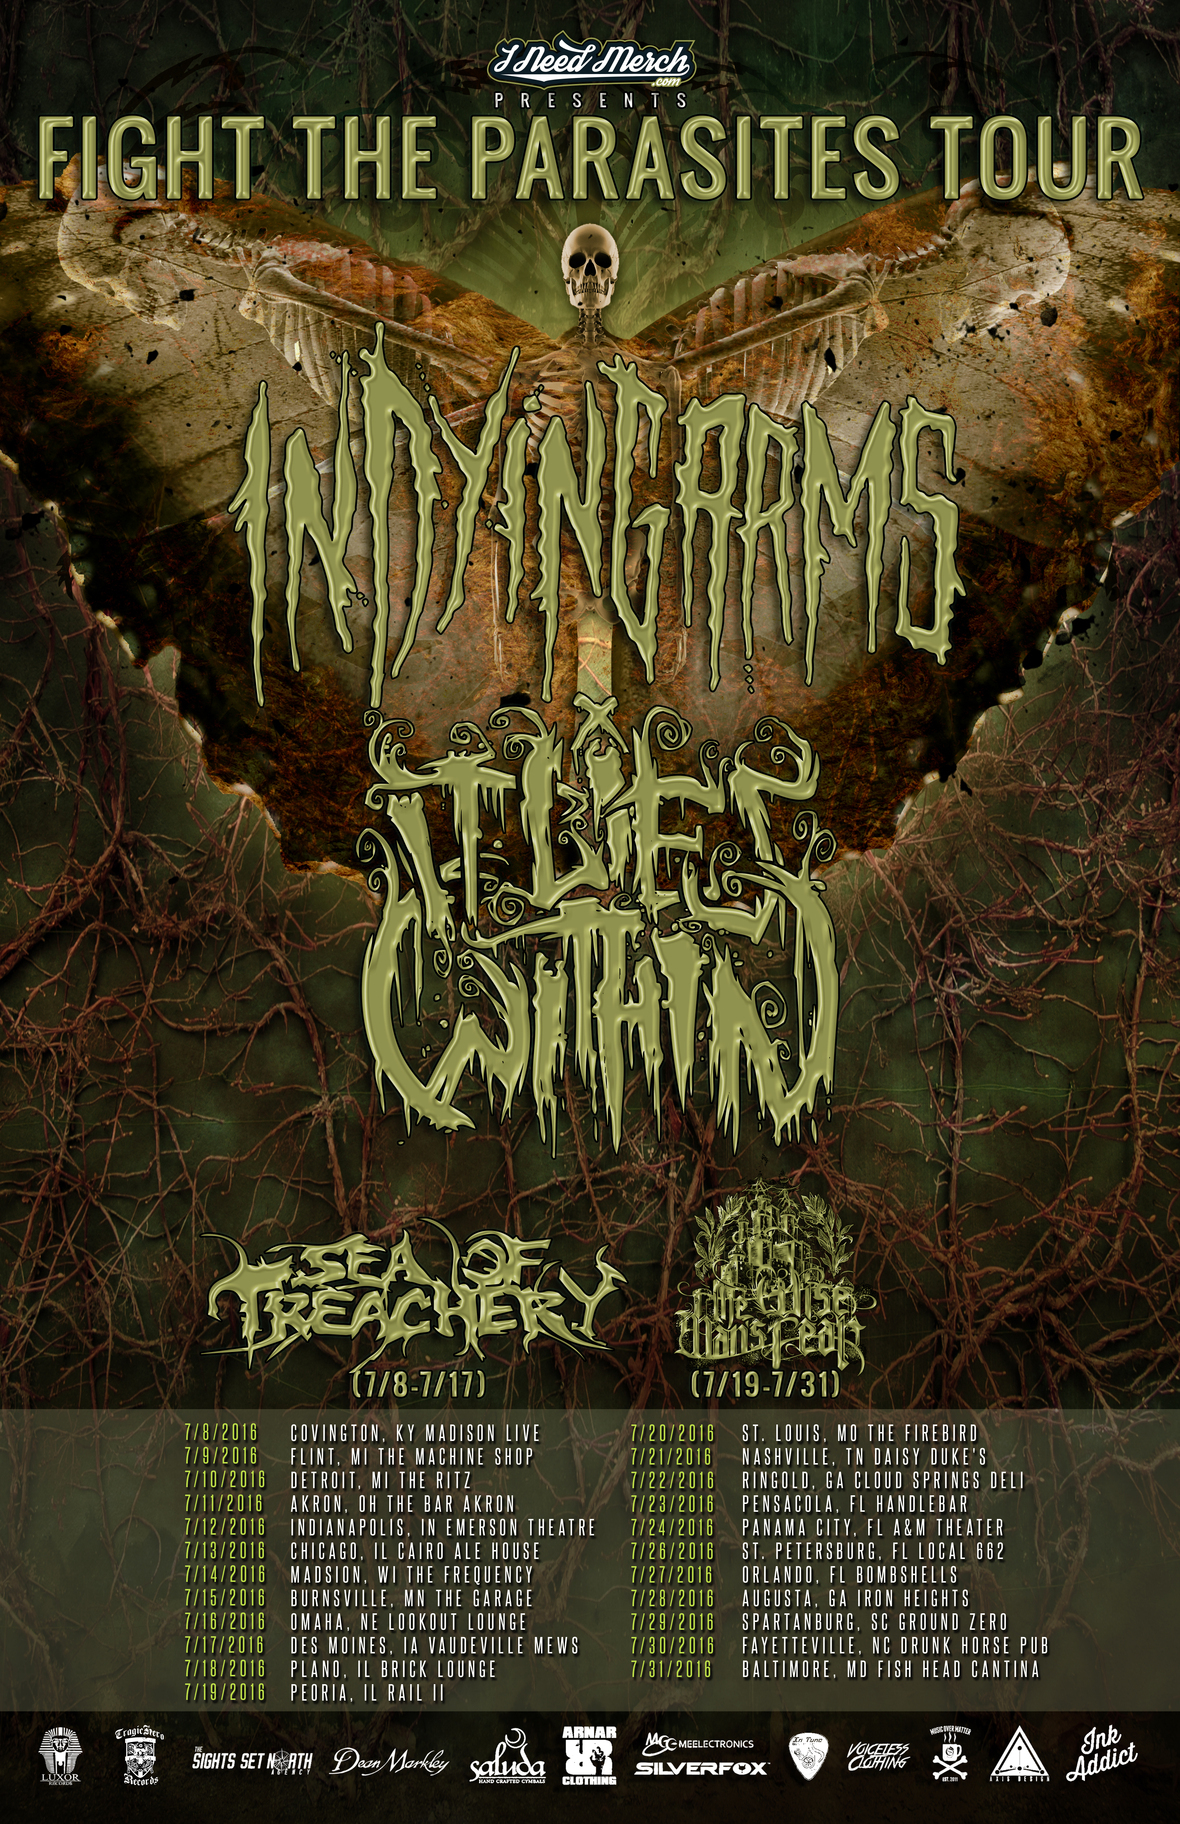 Fight The Parasites Tour dates 2